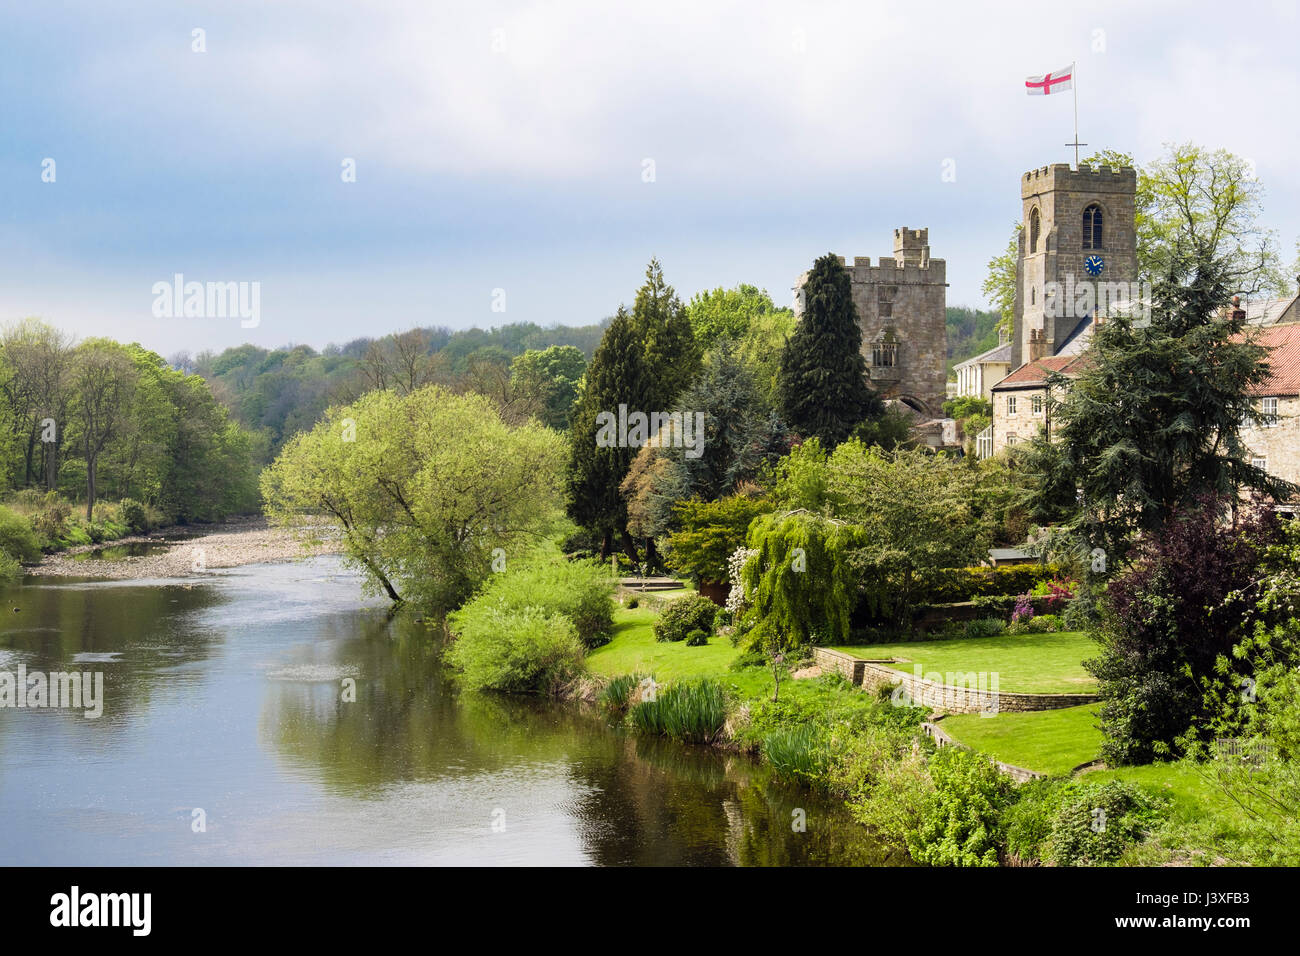 Yorkshire village church of St Nicholas and Marmion Tower beside River Ure. West Tanfield, North Yorkshire, England, - Stock Image